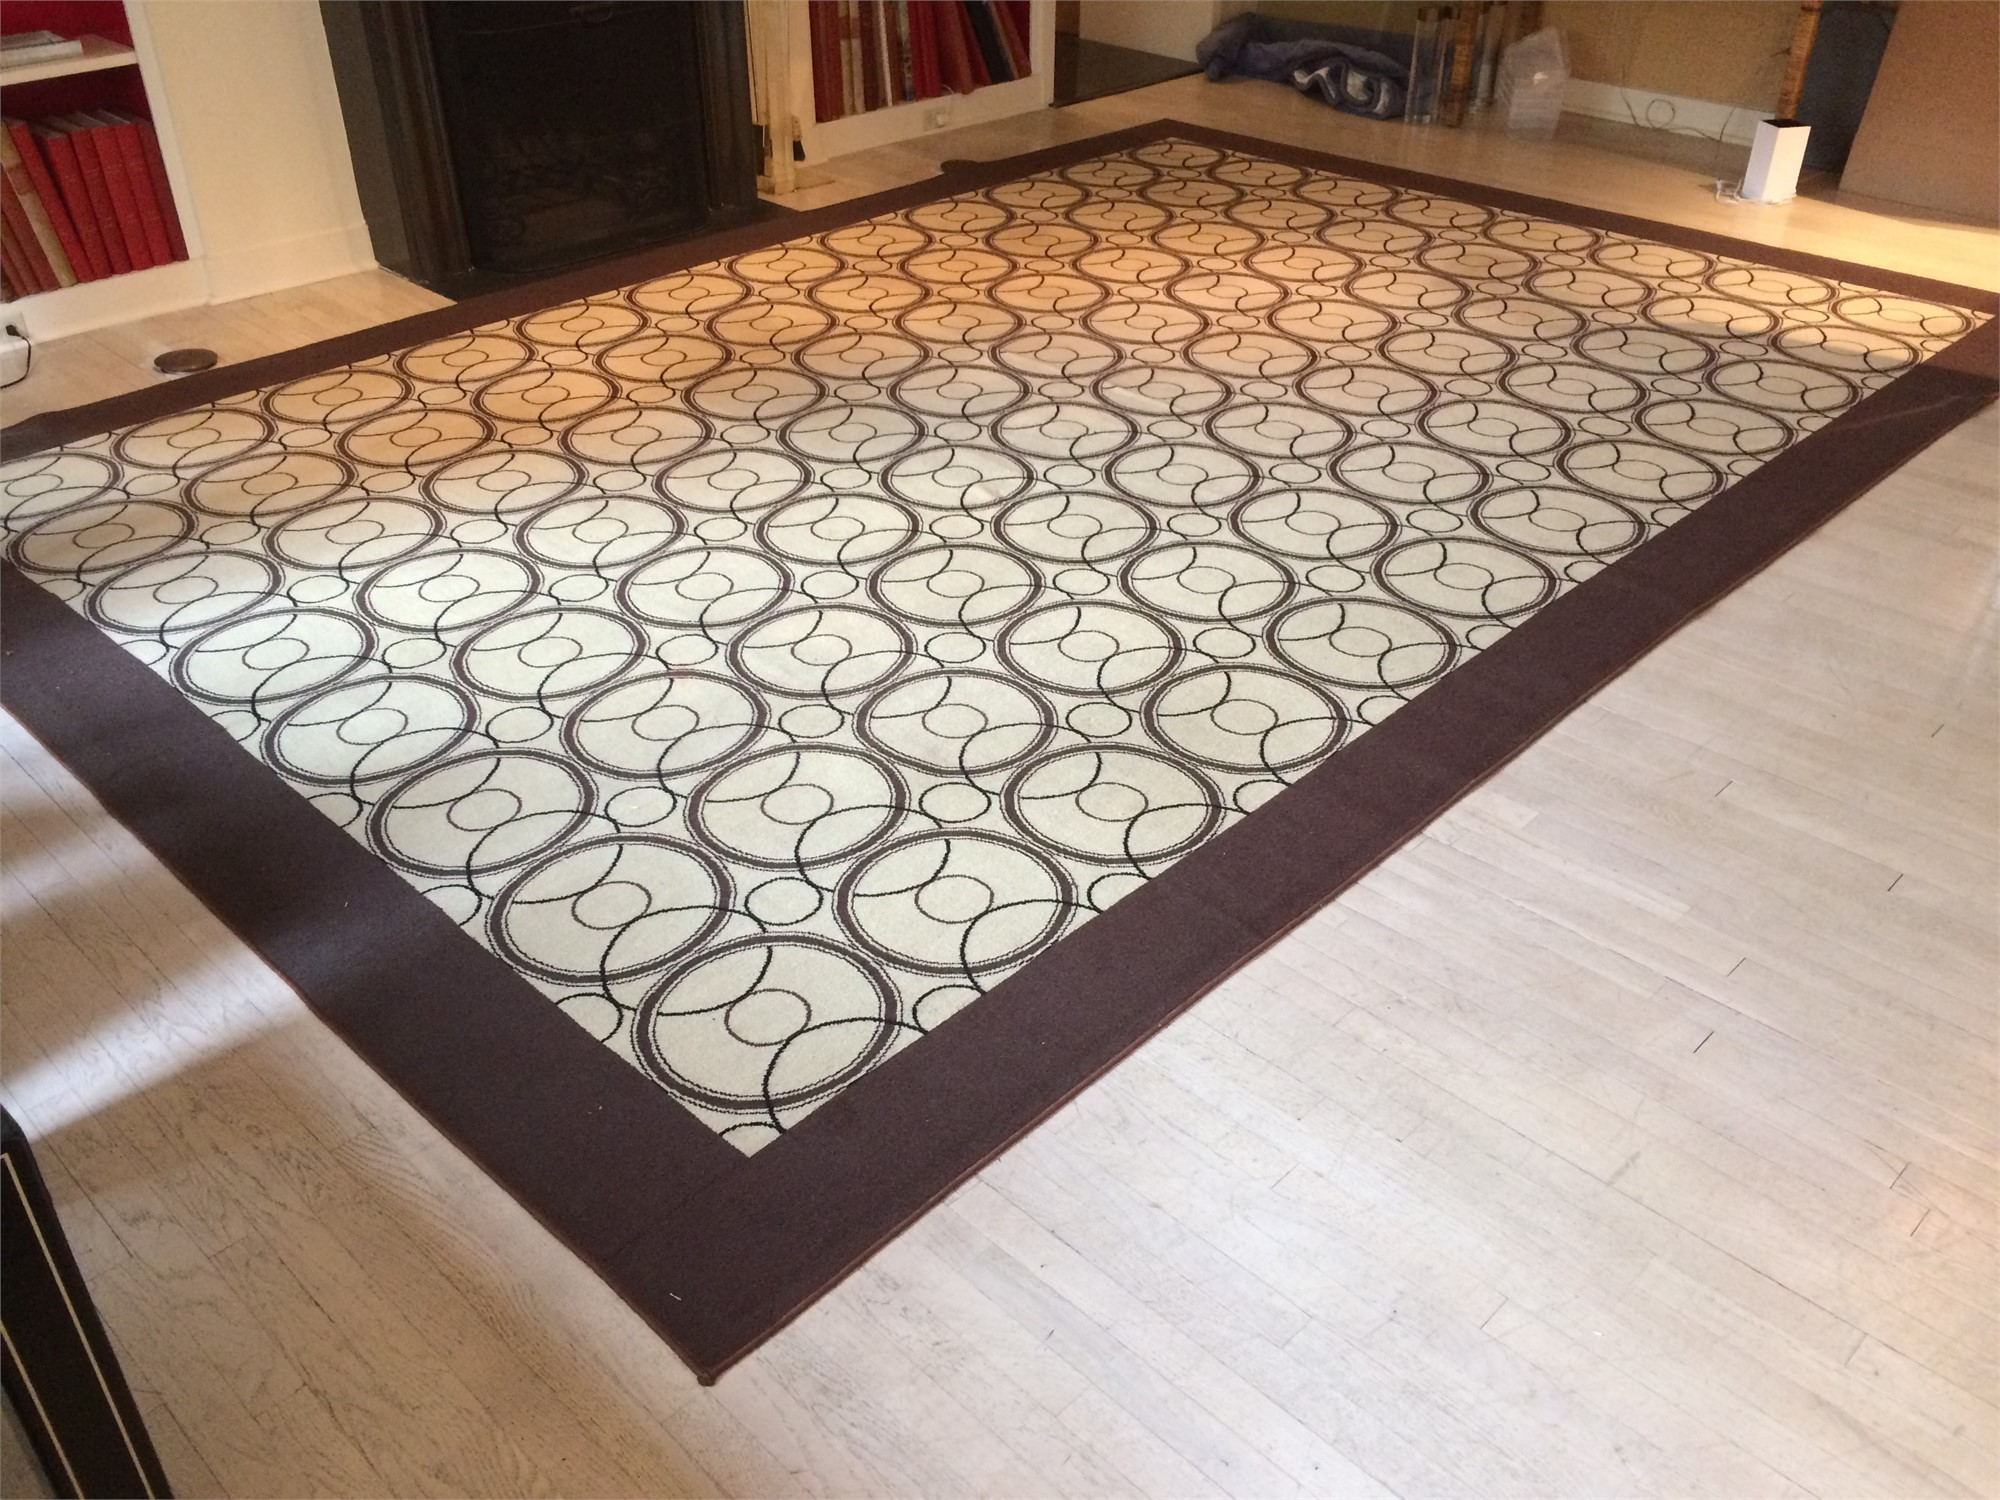 RUG BY ALESSANDRO ALBRIZZI by Alessandro Albrizzi